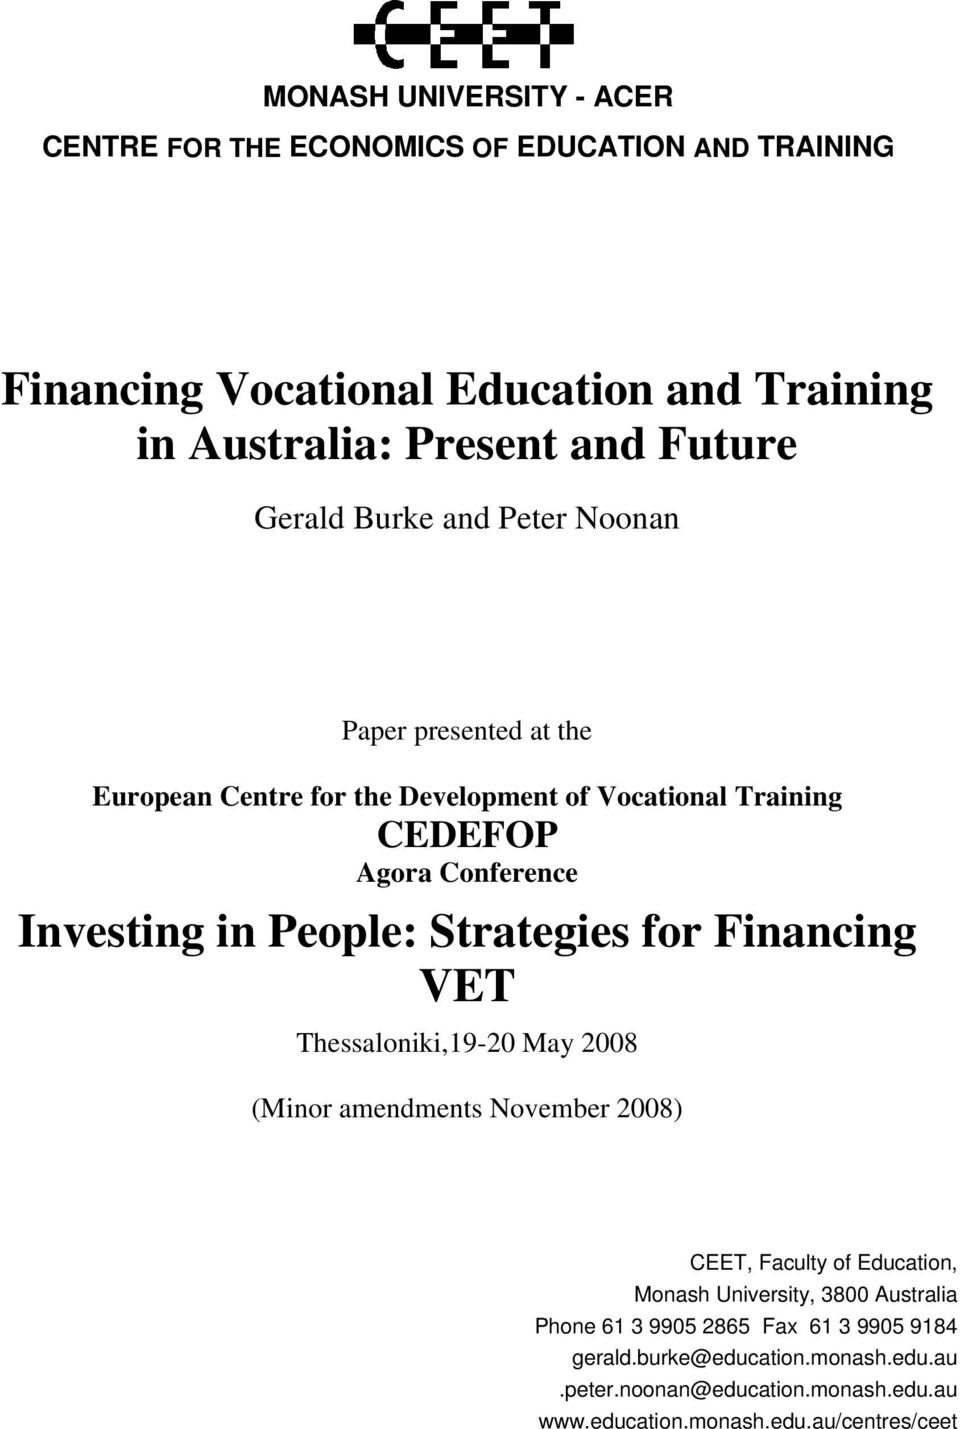 People: Strategies for Financing VET Thessaloniki,19-20 May 2008 (Minor amendments November 2008) CEET, Faculty of Education, Monash University, 3800